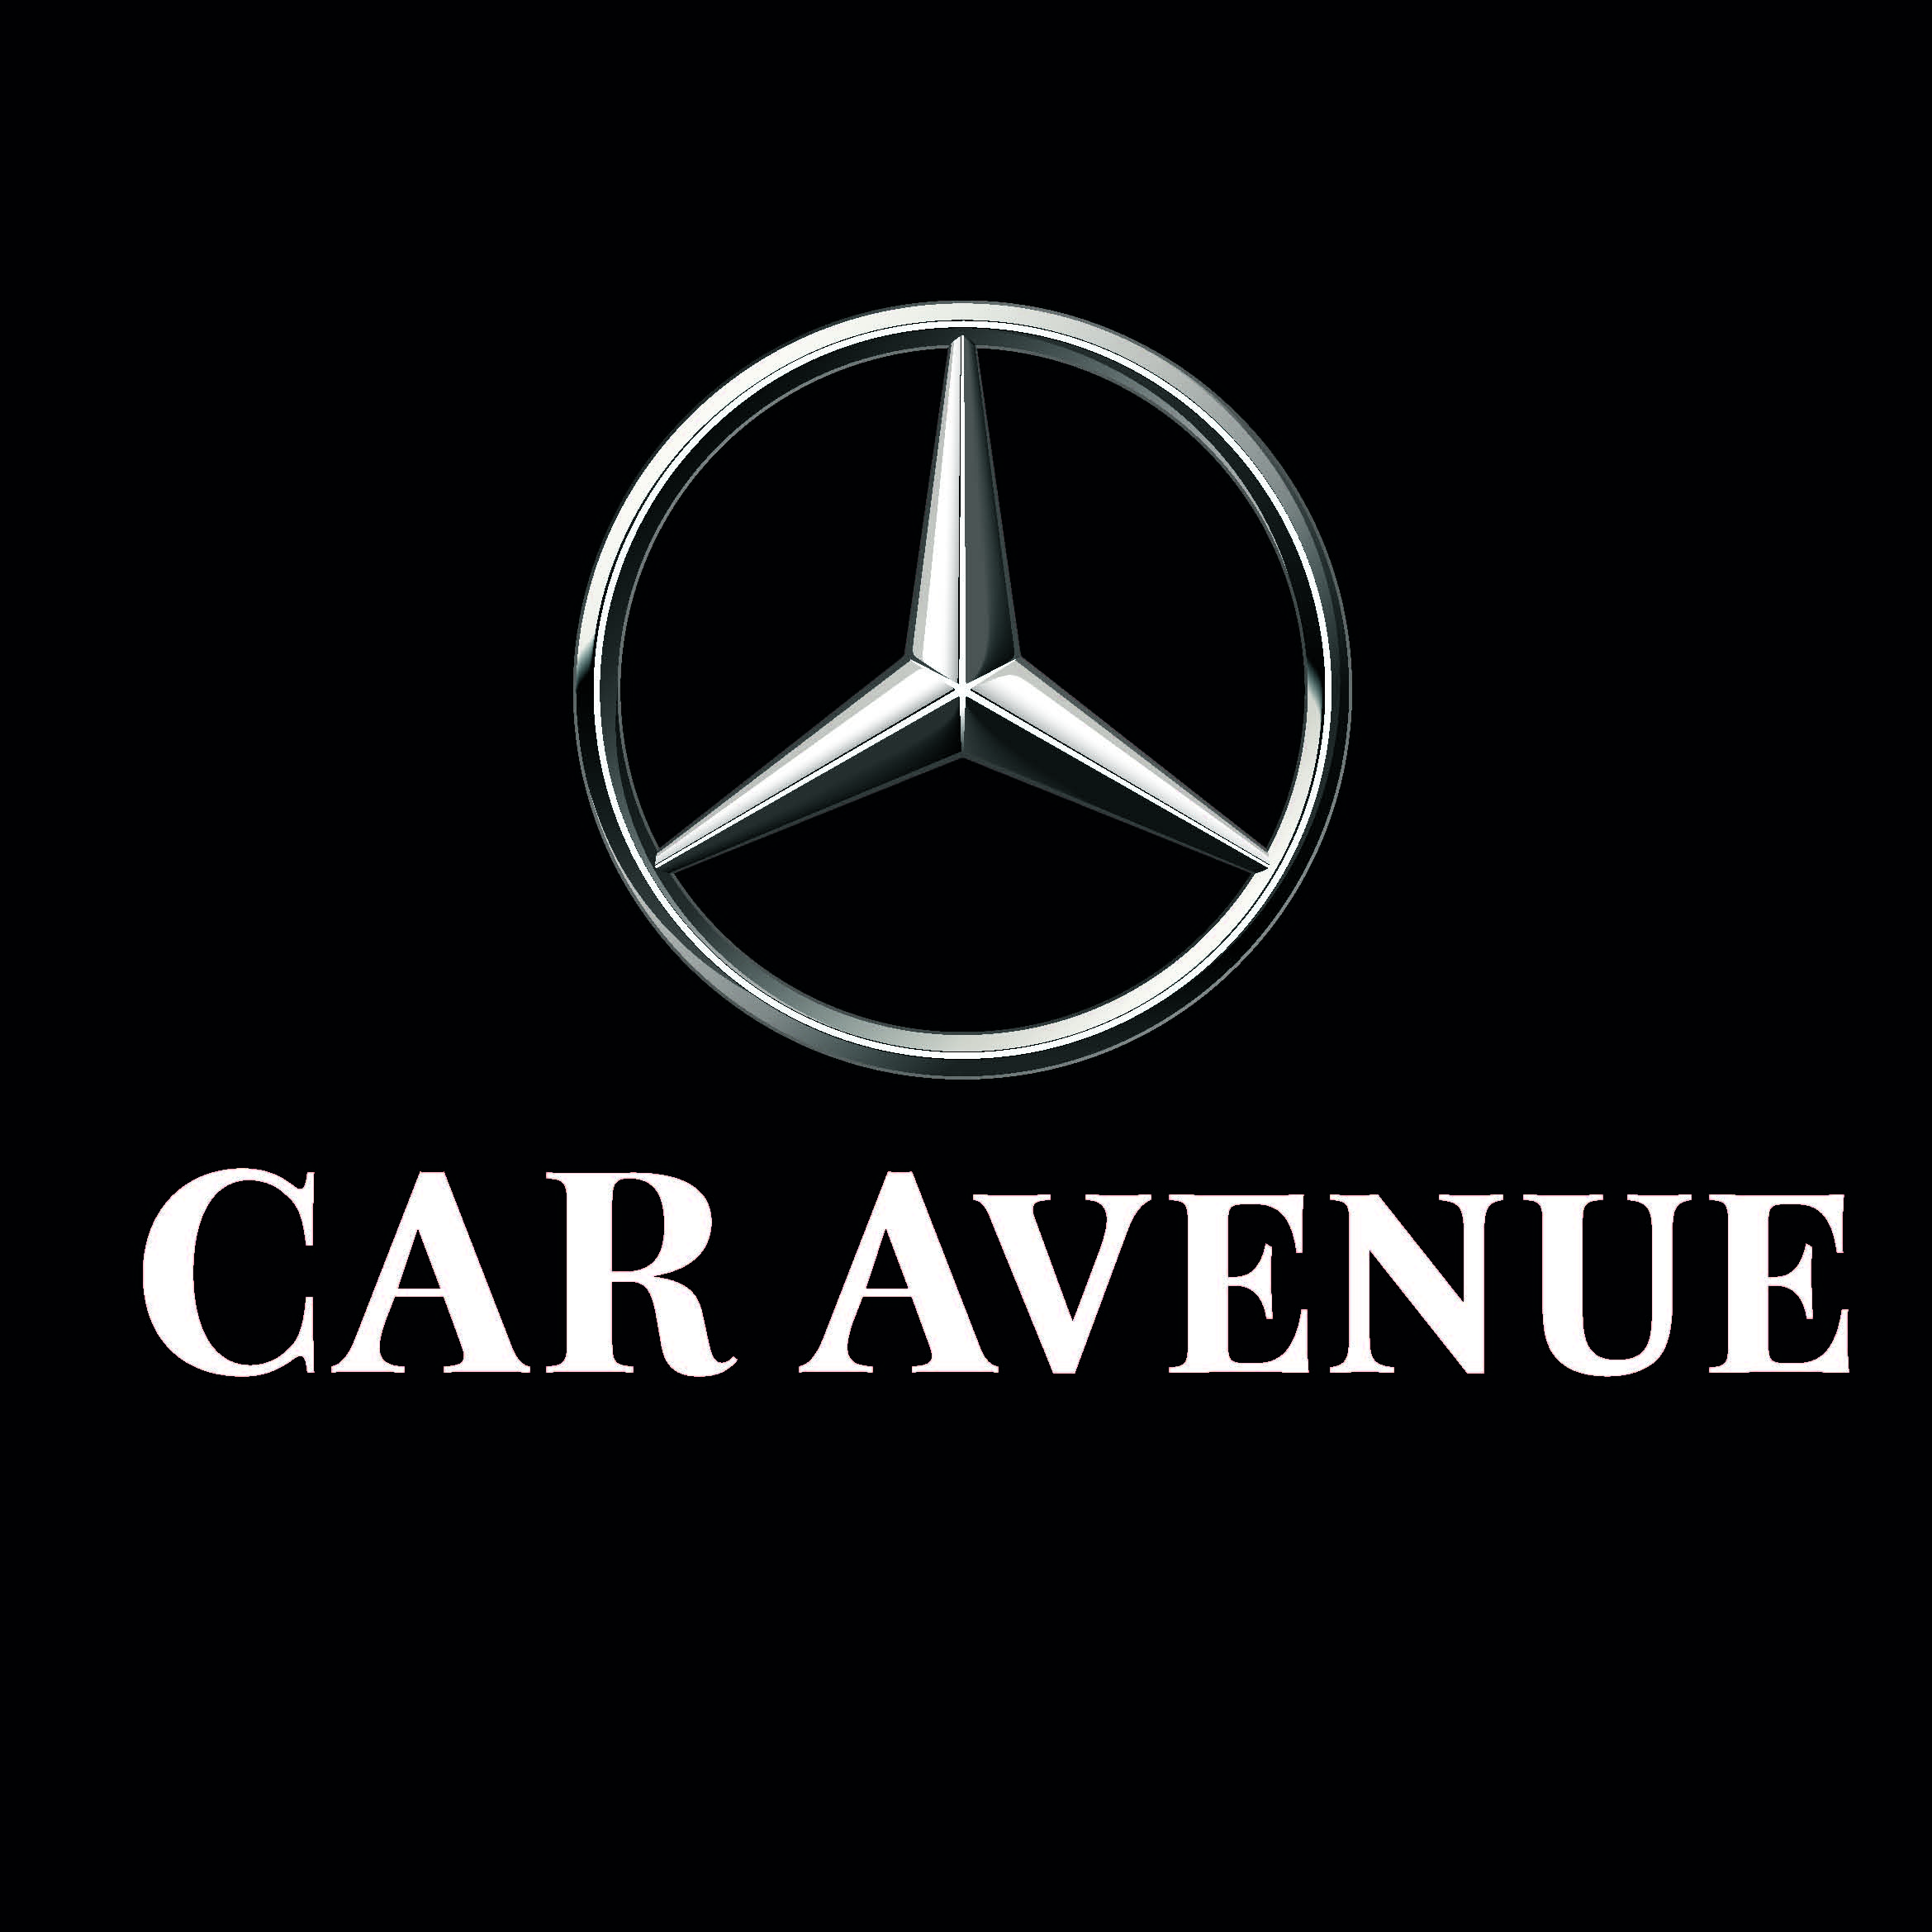 1618319376-Logo CAR Avenue noir pdf vecto.jpg